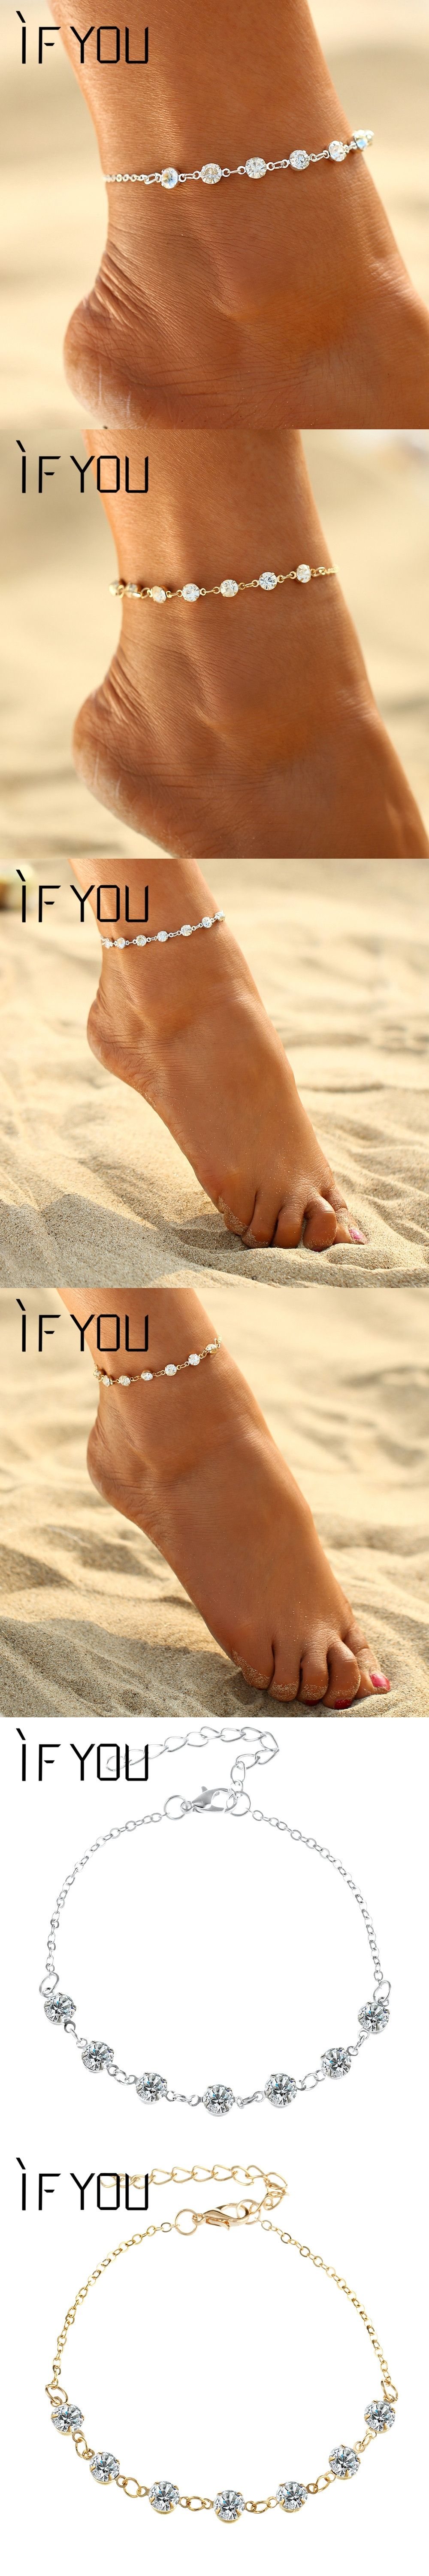 ecuatwitt and toe woman wear anklet anklets rings that women wearing ladies